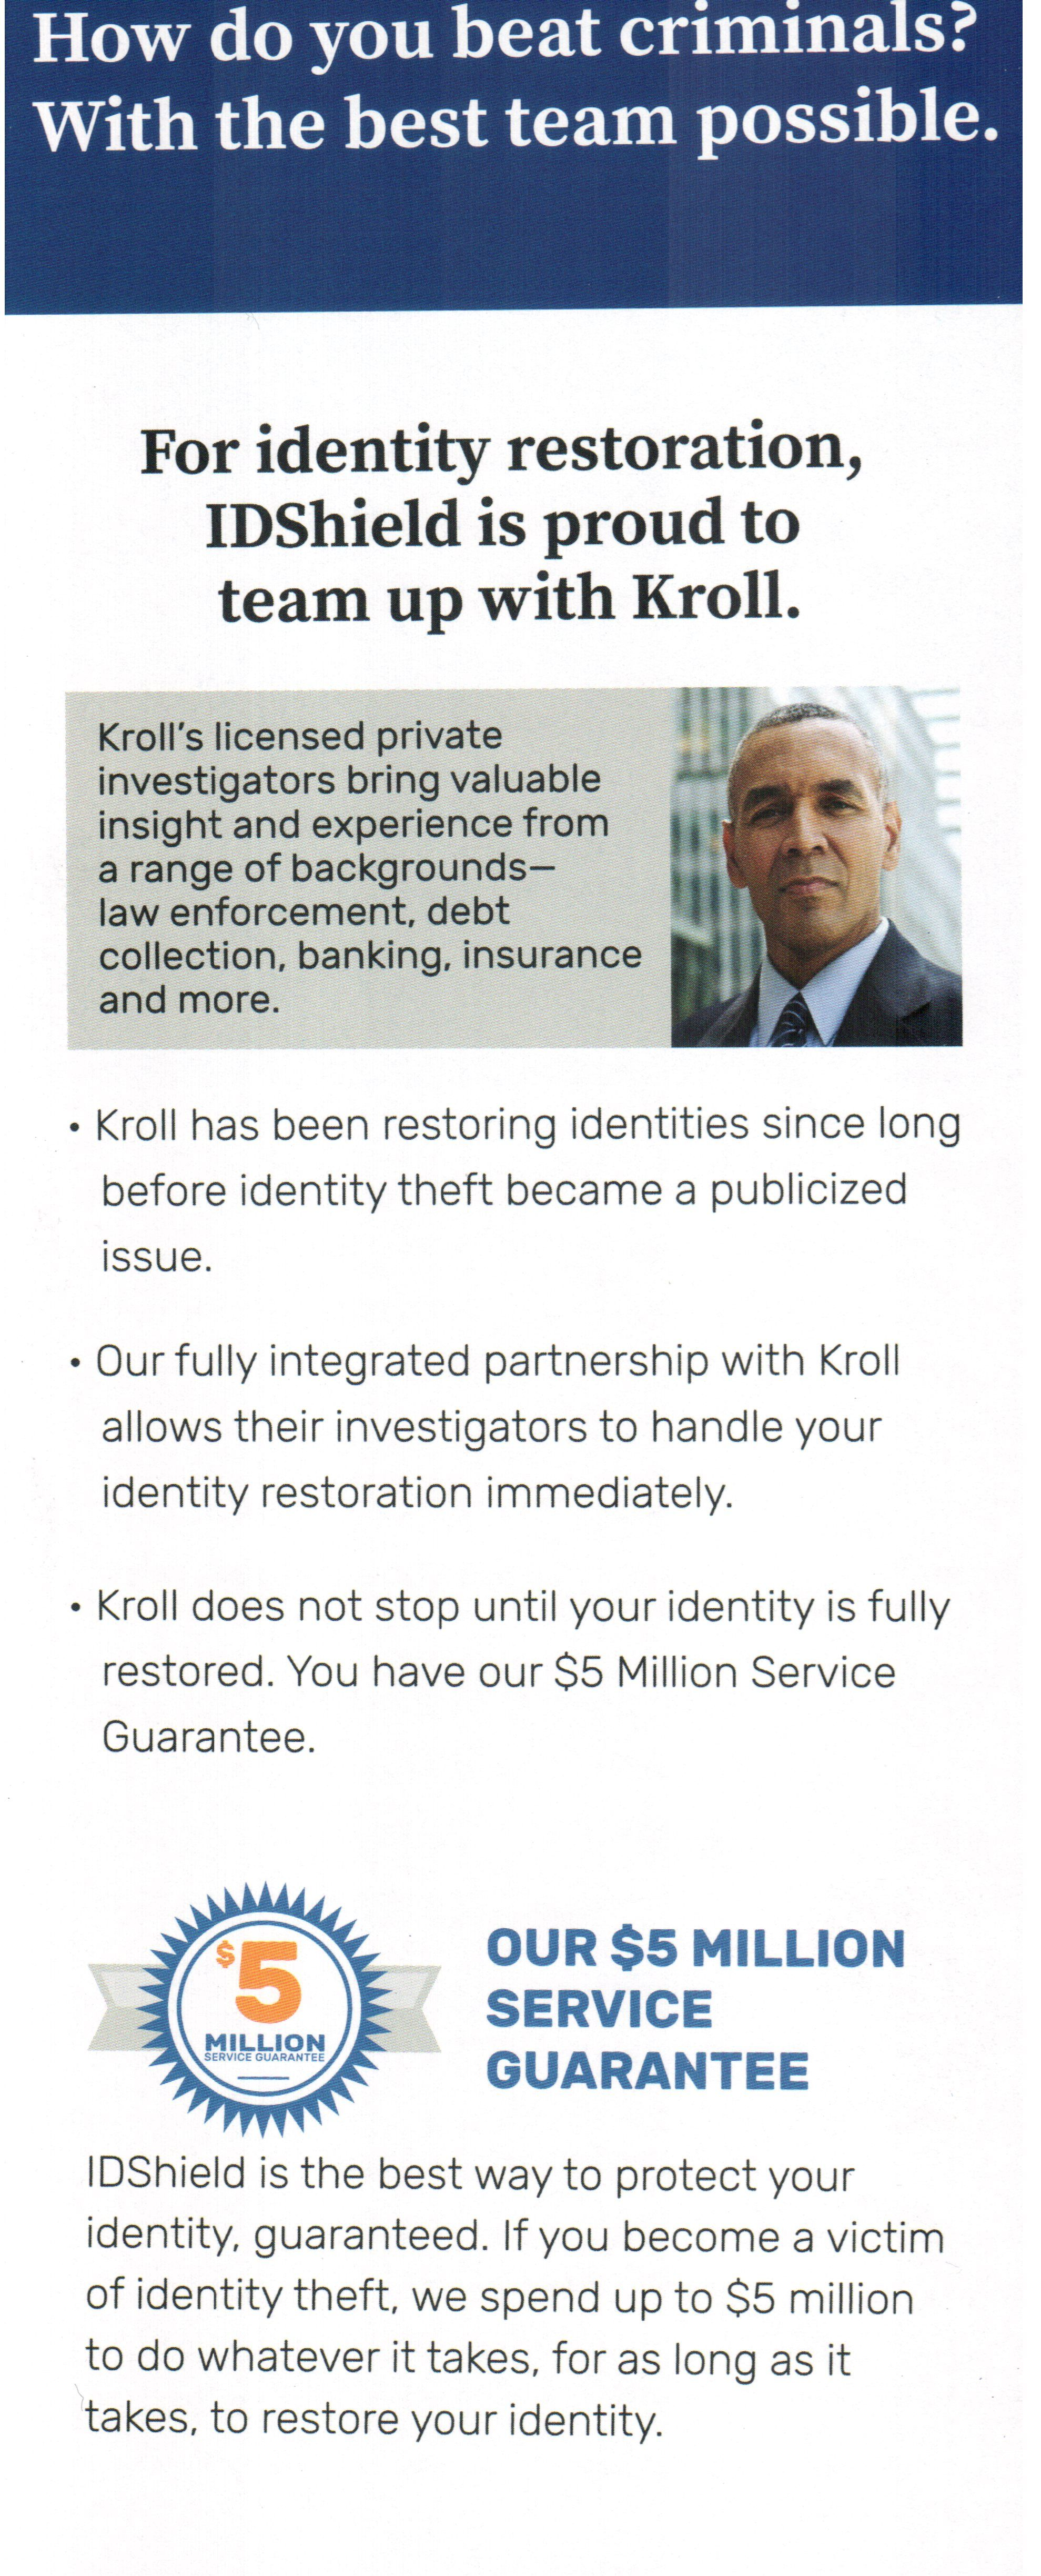 Kroll S Licensed Private Investigators Bring Valuable Insight And Experience From A Range Debt Collection Community Reinvestment Act Identity Theft Protection